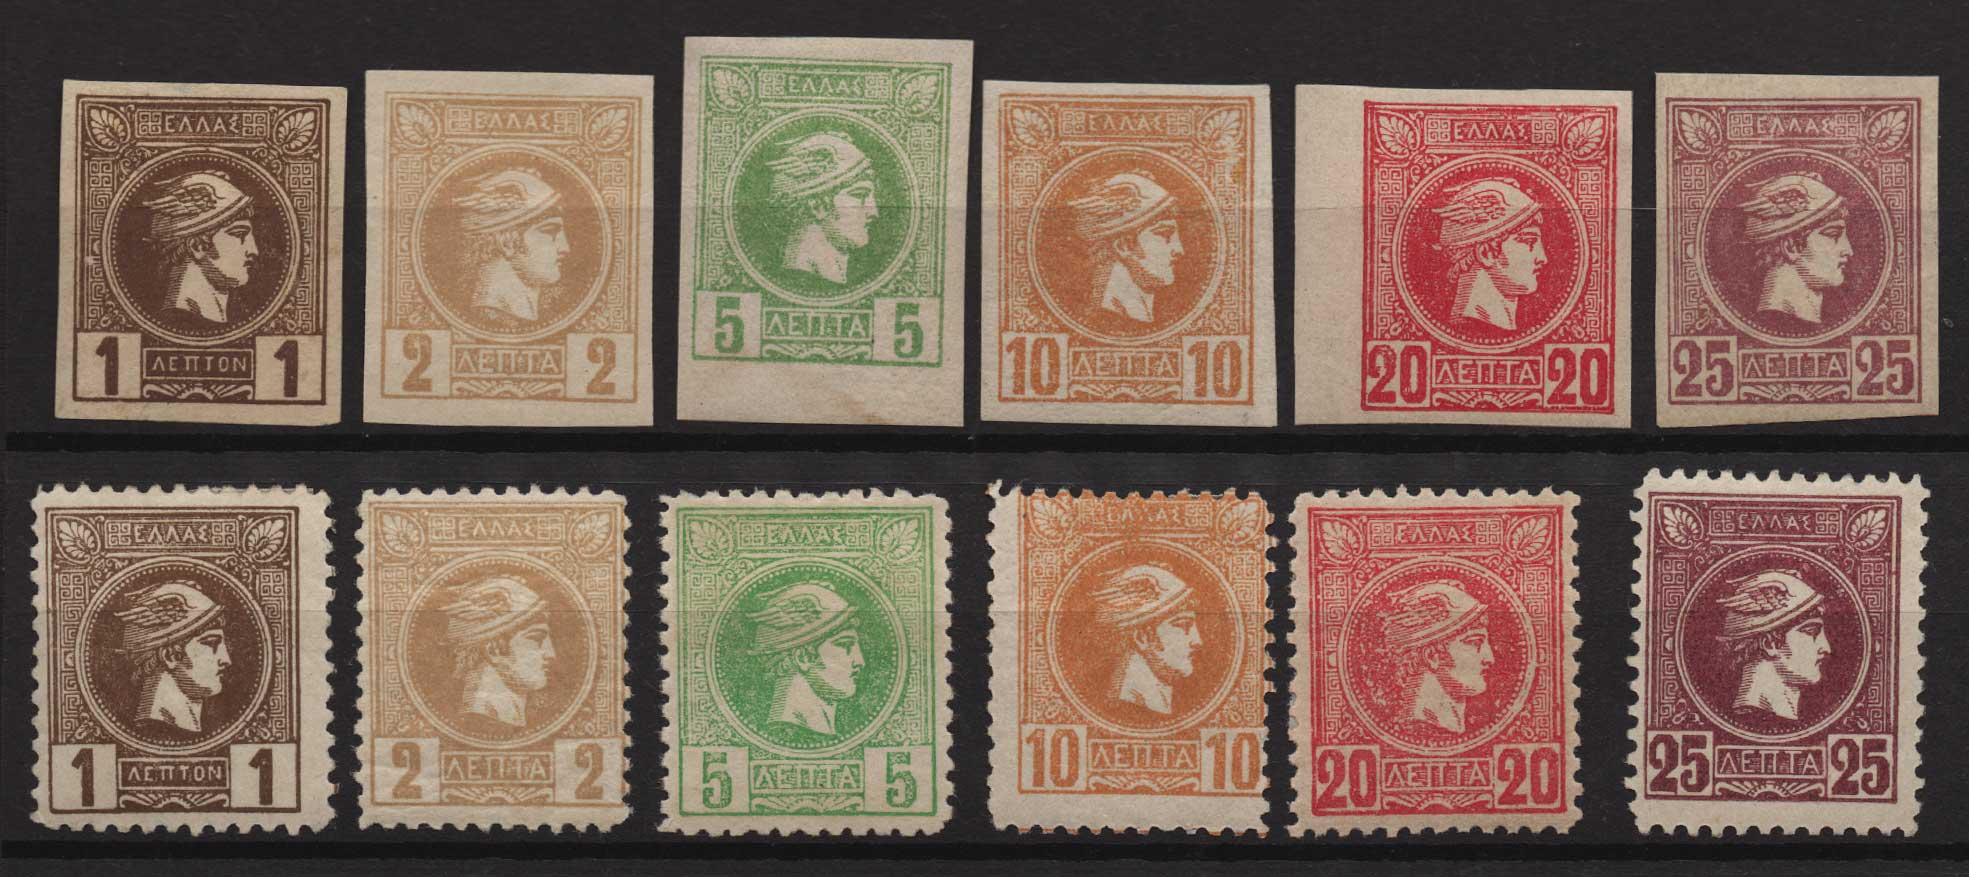 Lot 451 - -  SMALL HERMES HEAD ATHENSPRINTING - 3rd PERIOD -  Athens Auctions Public Auction 83 General Stamp Sale